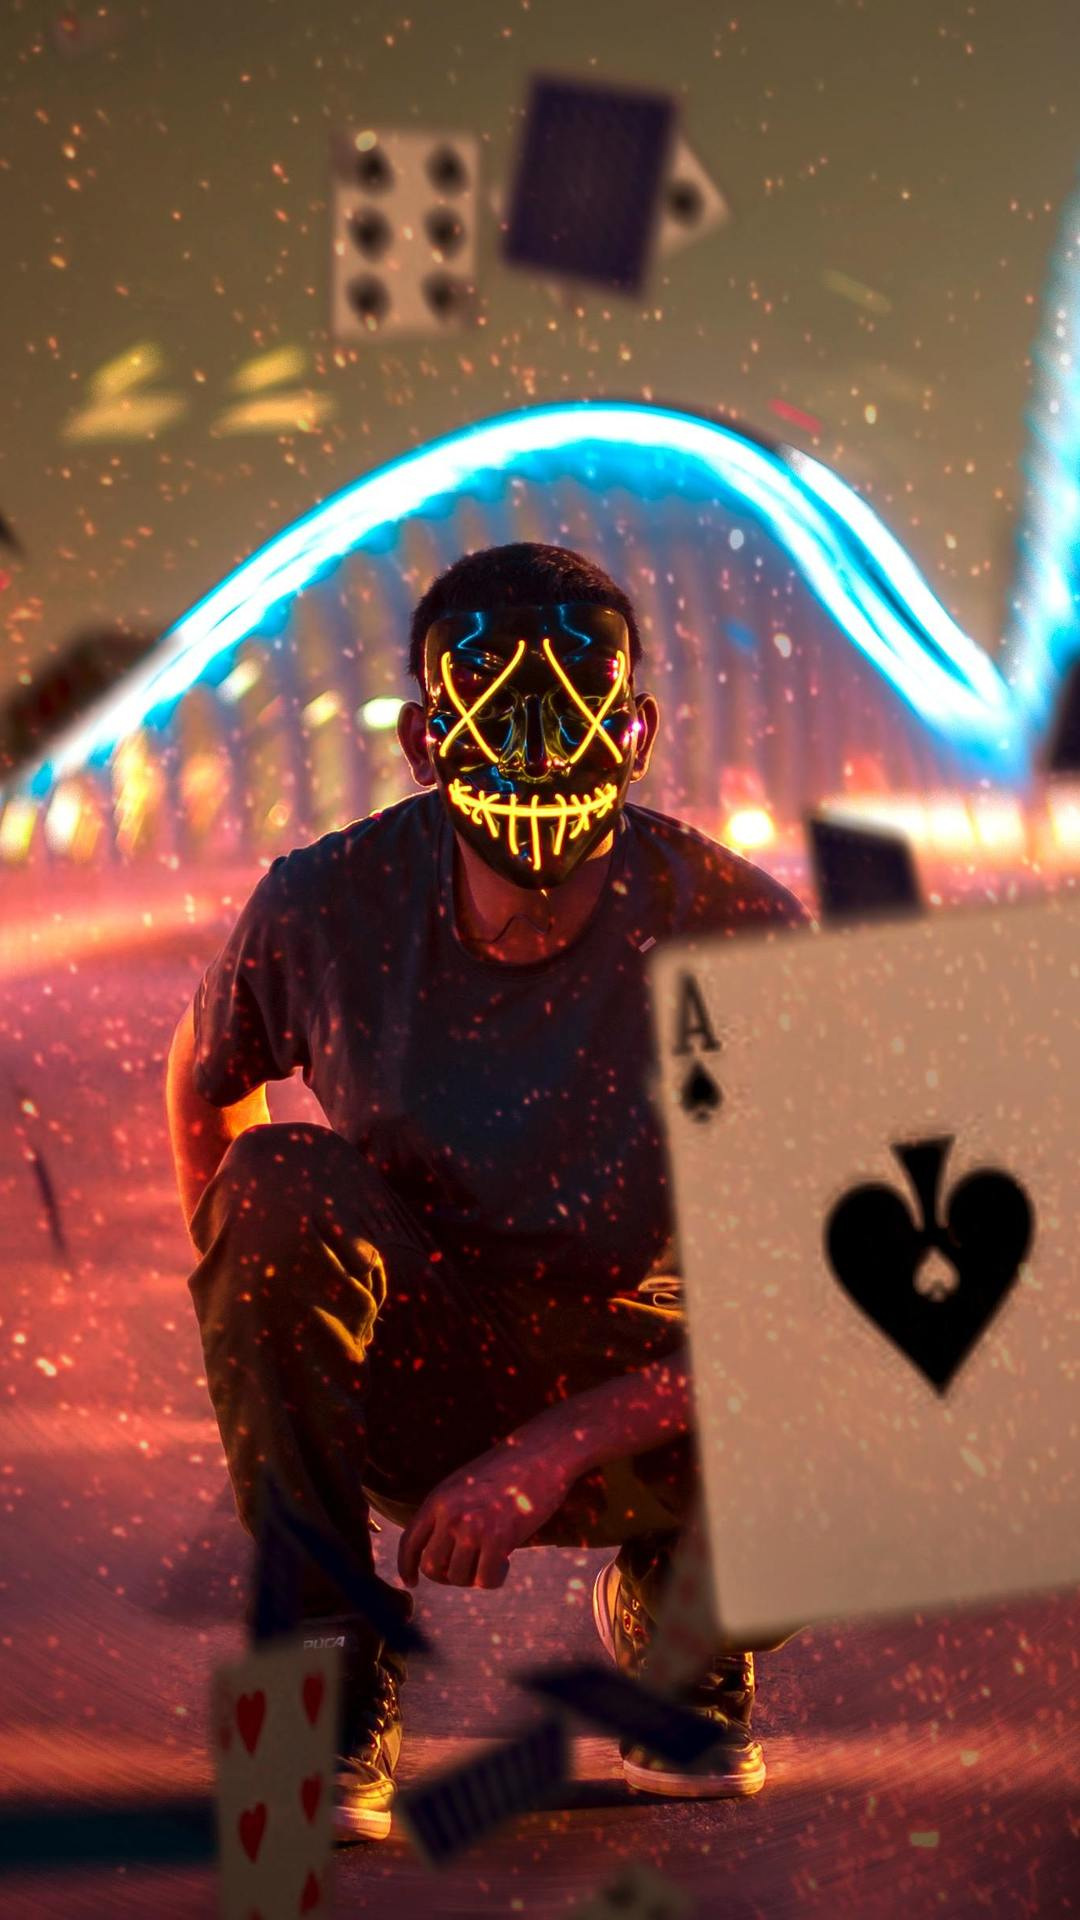 Magic Cards and Mask Guy iPhone Wallpaper